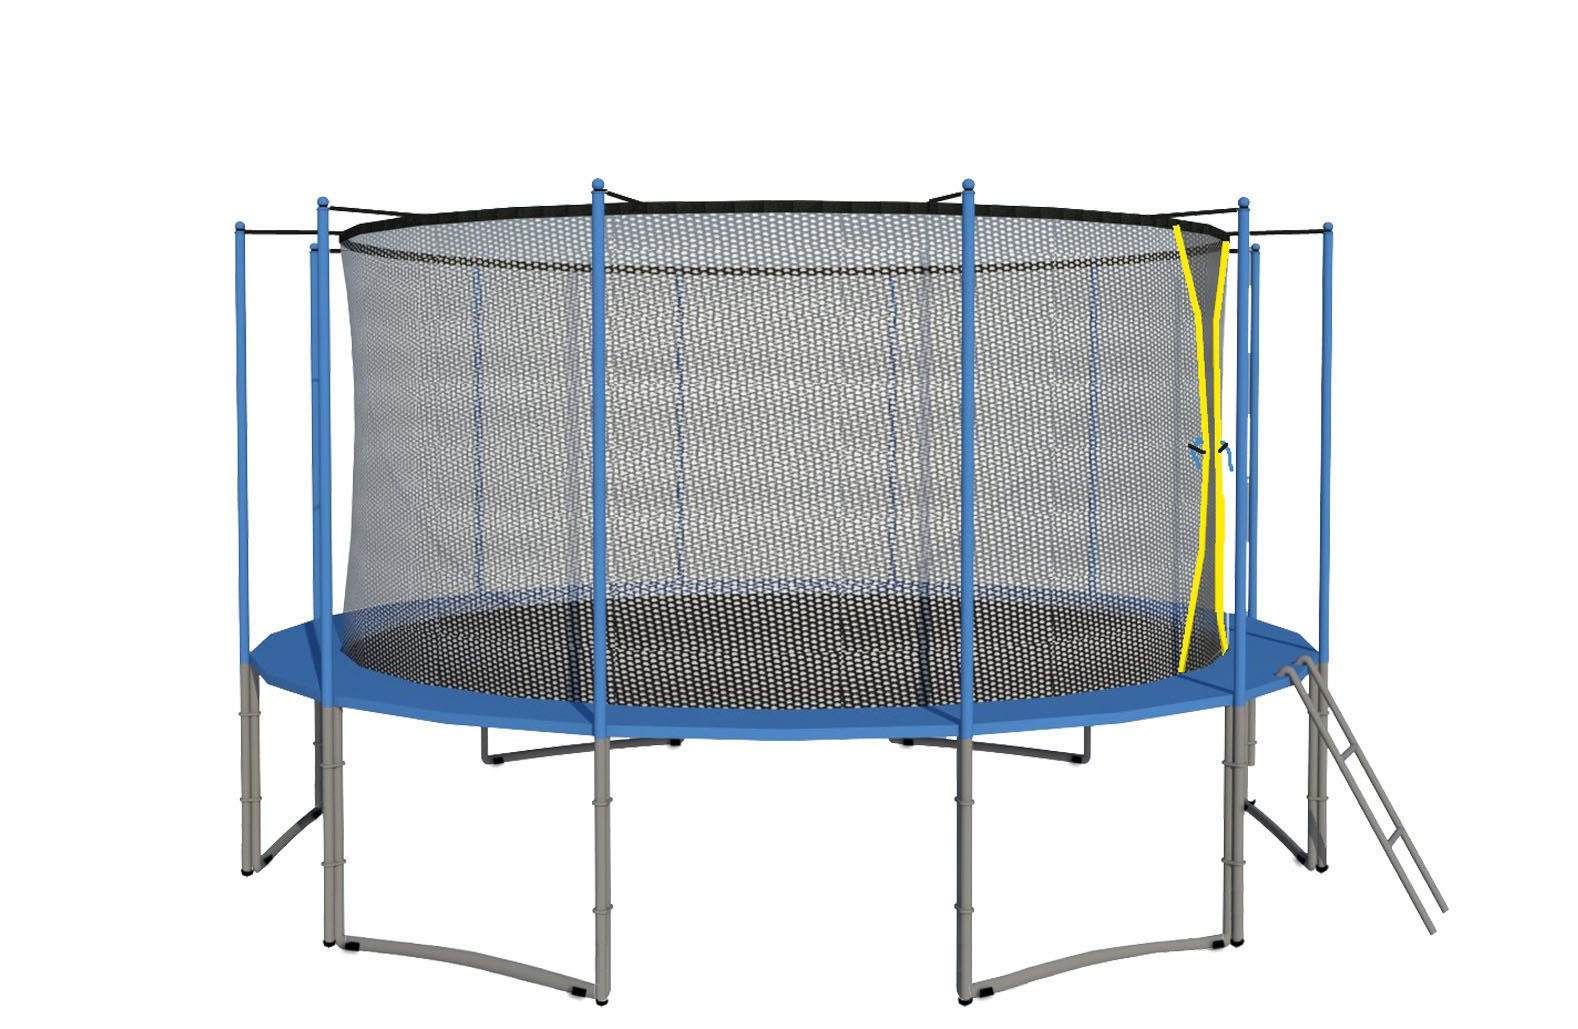 ExacMe 16' Ft 6W Legs Trampoline w/ Safety Pad and Enclosure Net and Ladder All-in-one Combo Set C16 by Exacme